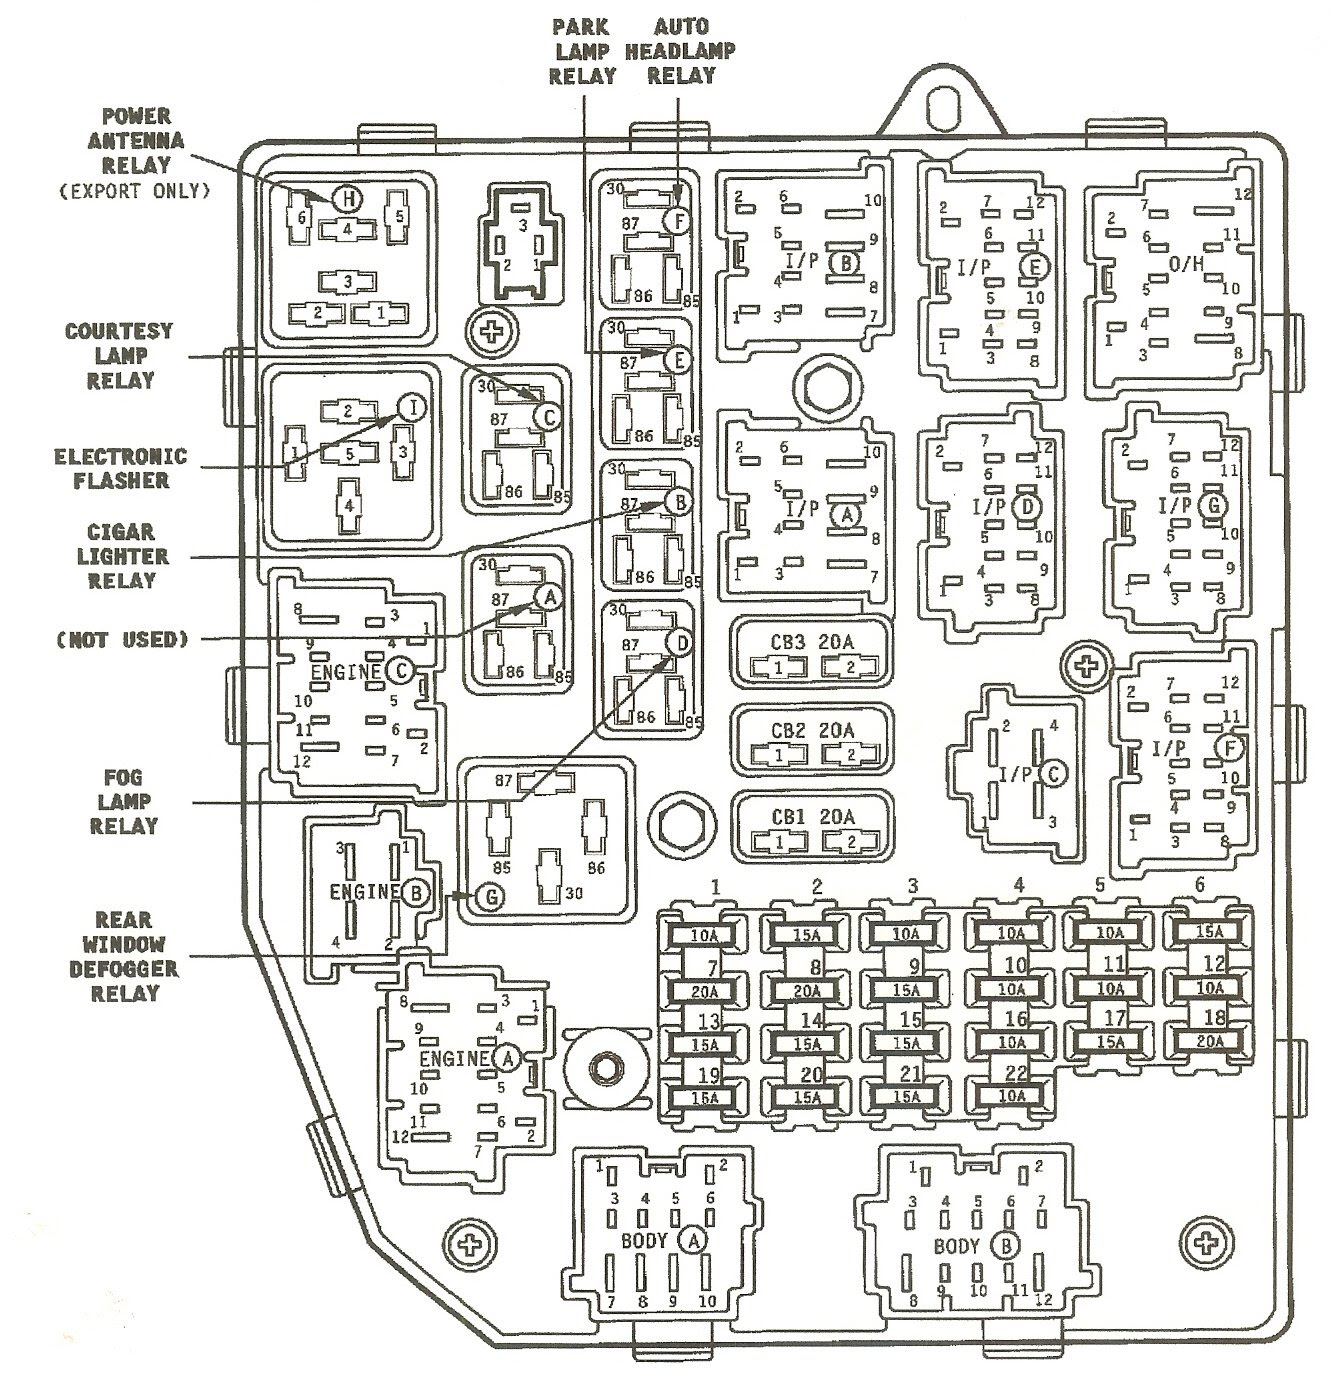 2003 Jeep Grand Cherokee Fuse Panel Diagram Fuse Box 95 Jeep Cherokee Bege Wiring Diagram